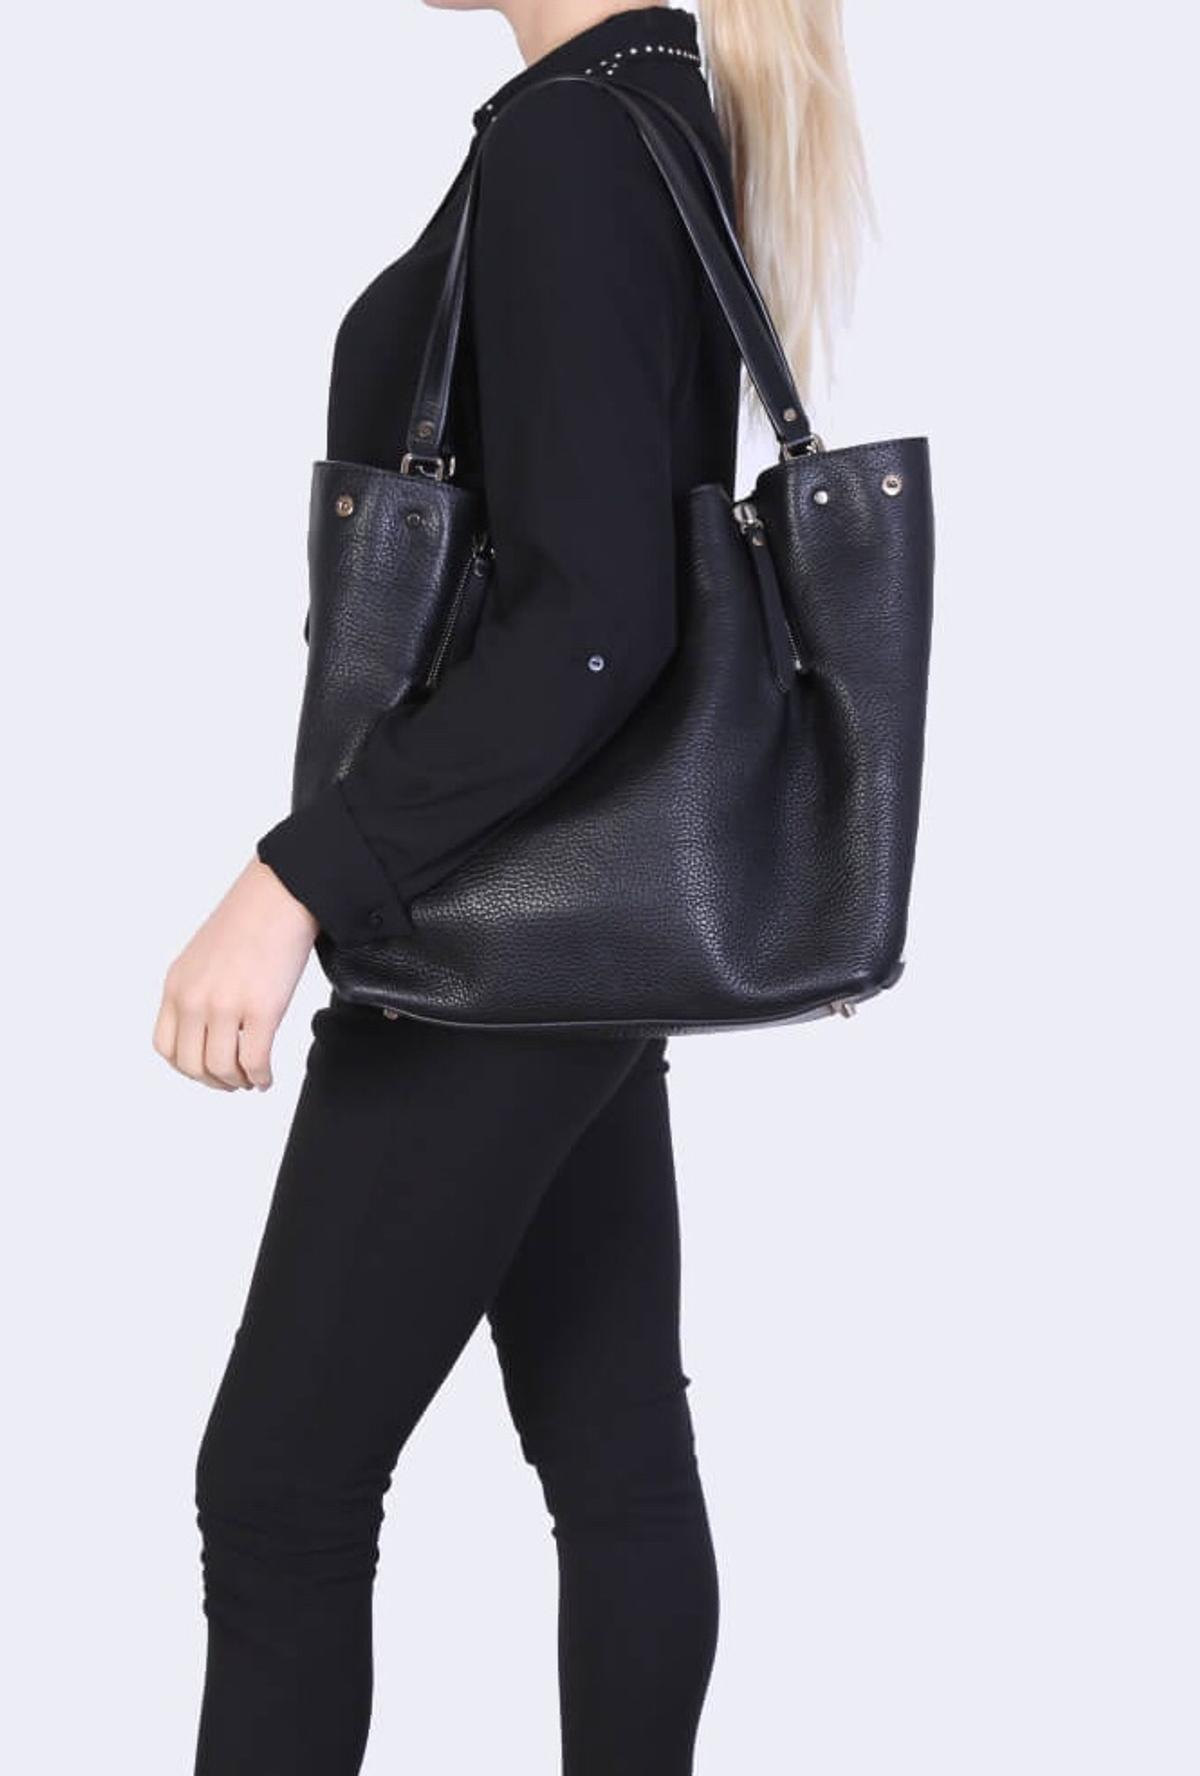 c2c1f82f742b Burberry Maidstone Leather Tote Medium in N1 London for £250.00 for ...